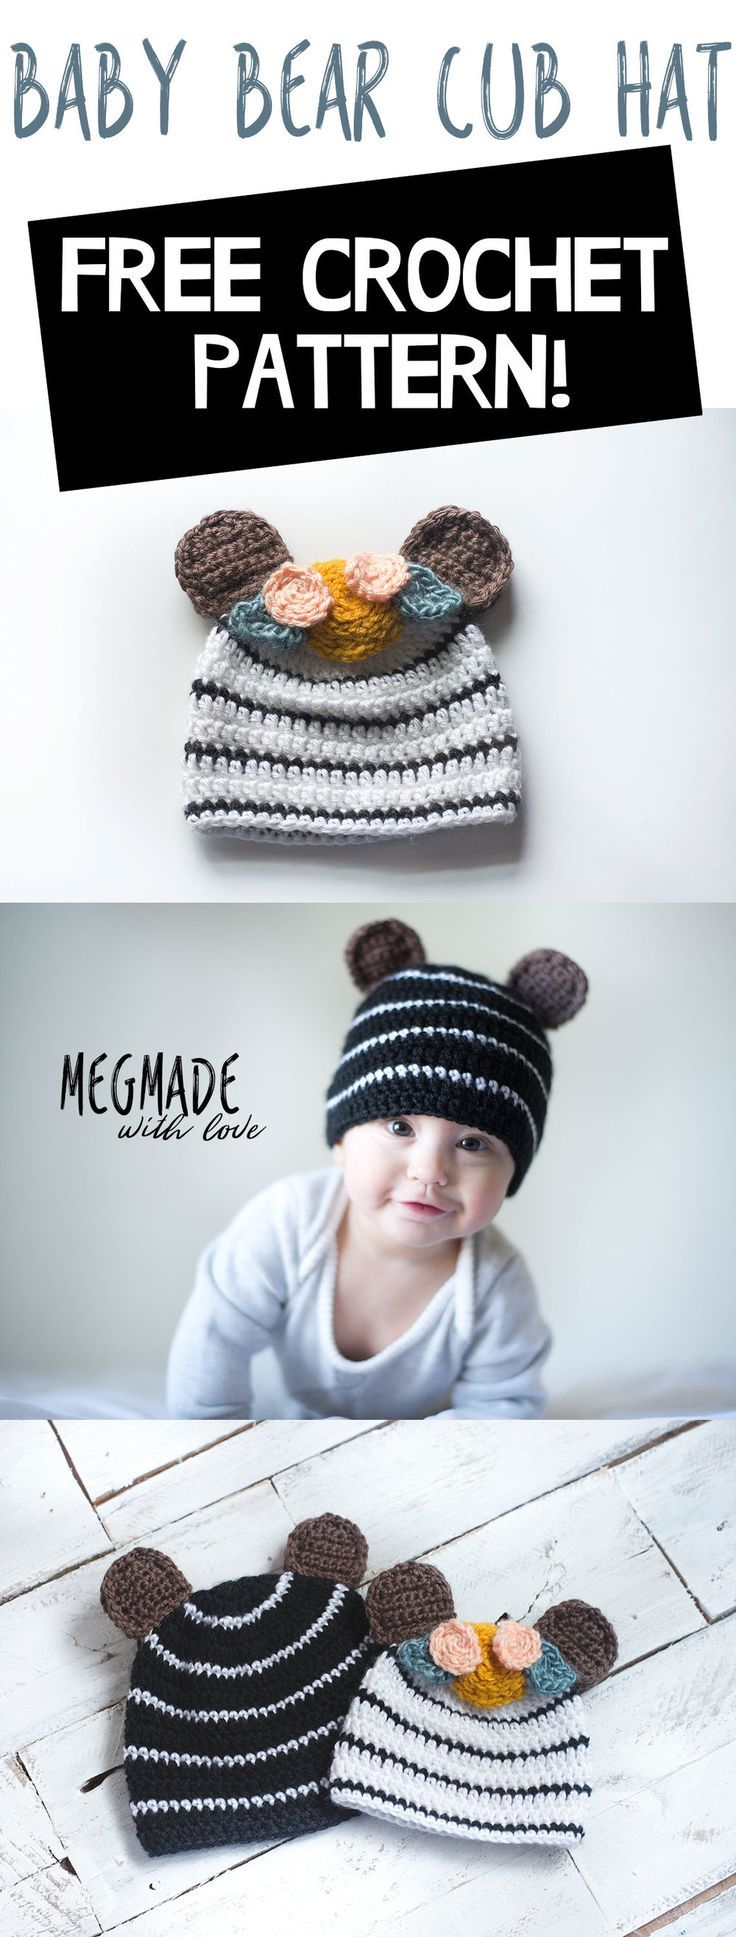 Free Crochet Pattern for a Baby Bear Cub Hat — Megmade with Love ...